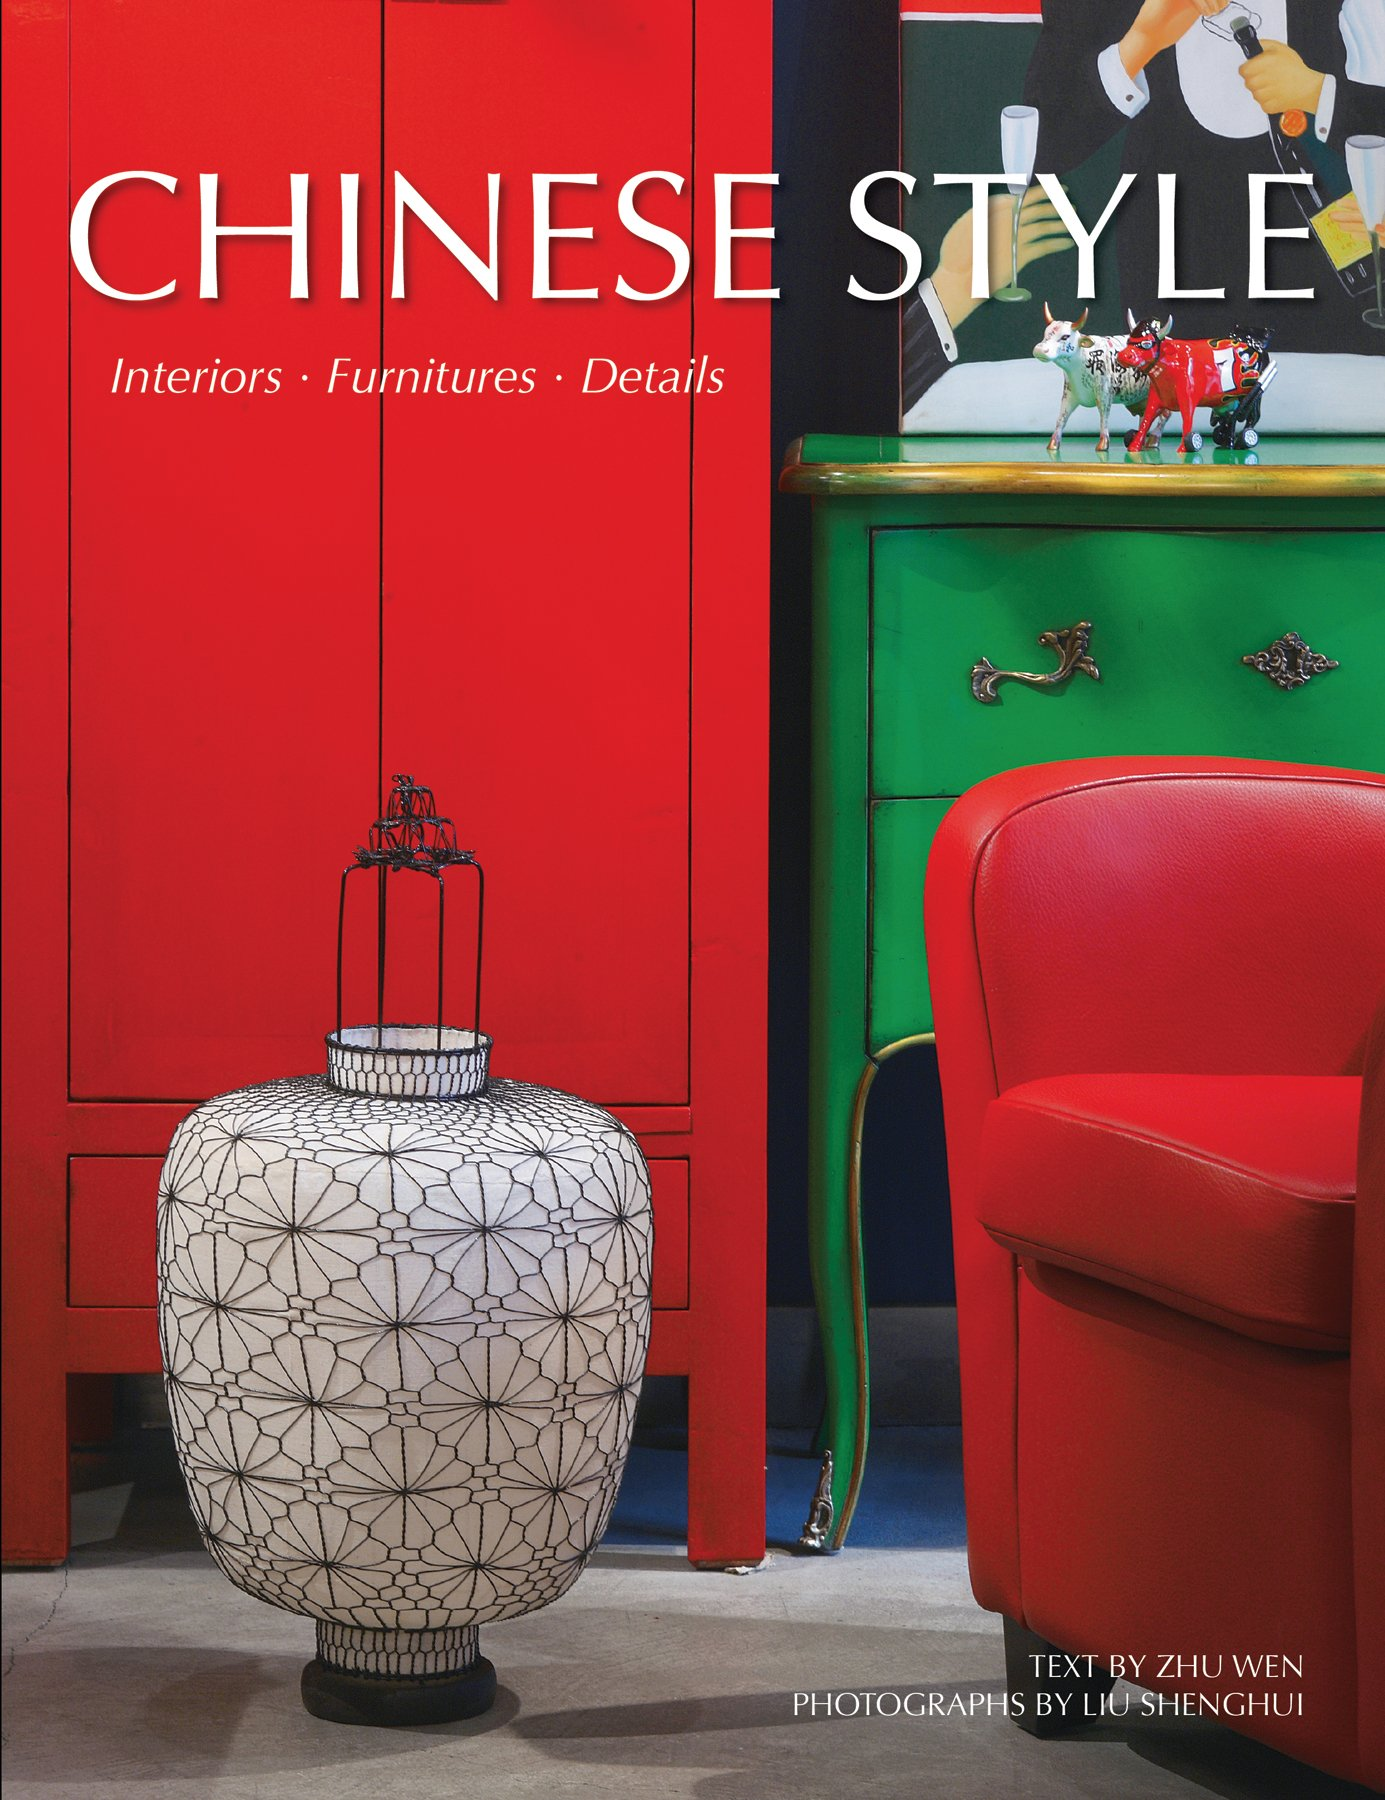 Chinese style interiors furniture details hardcover october 10 2011